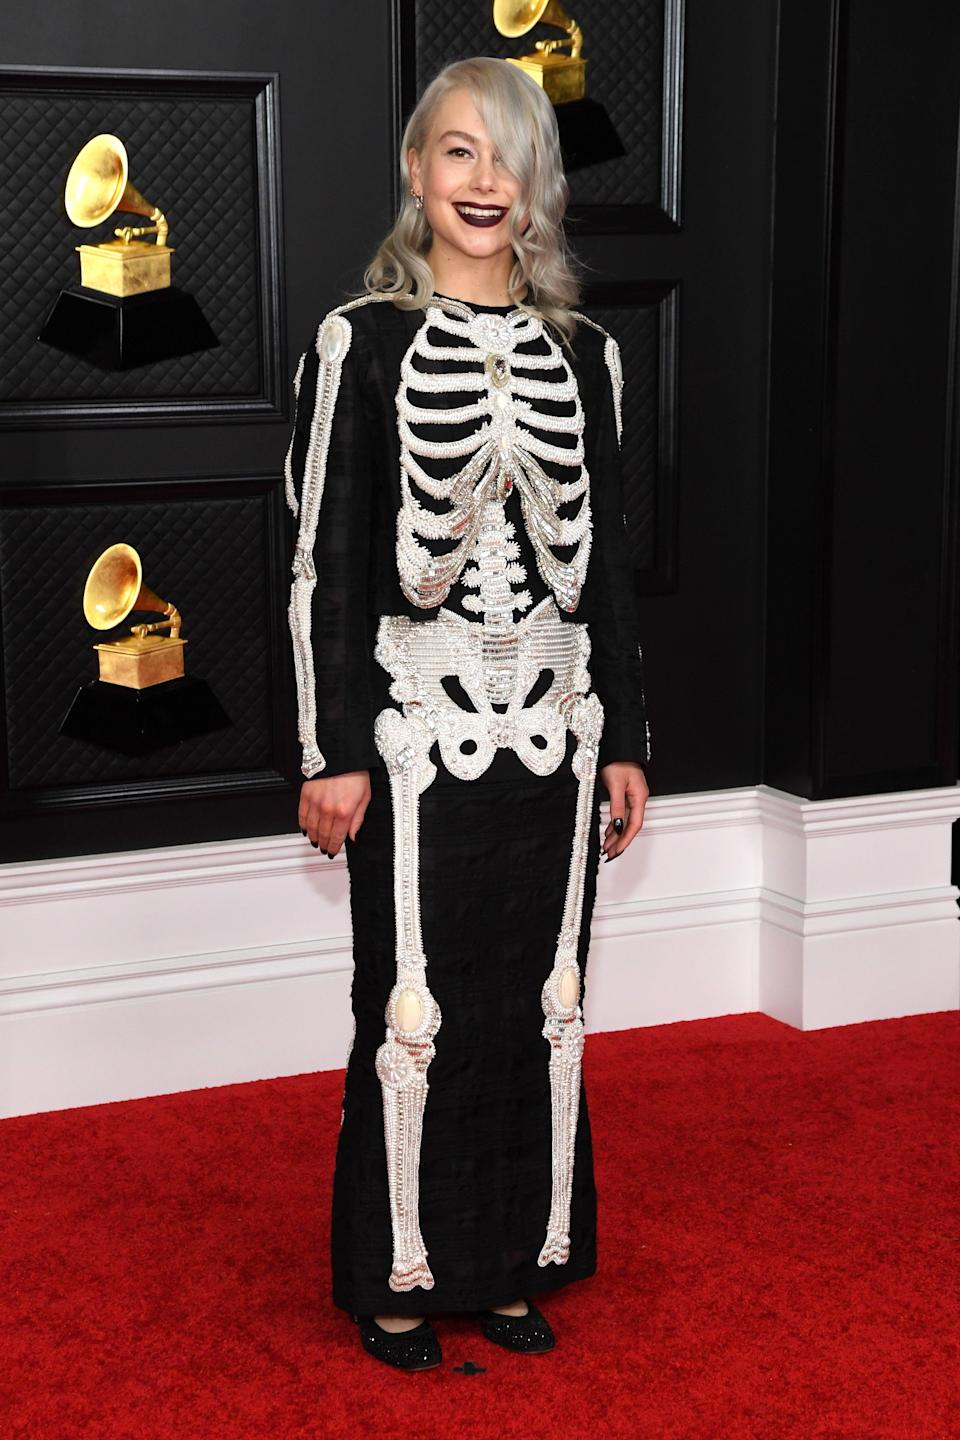 """<h2>Phoebe Bridgers in Thom Browne<br></h2><br>Keeping with her skeleton chic red carpet signature, """"Motion Sickness"""" singer Phoebe Bridgers """"basically stole"""" this bedazzled Thom Browne two-piece from the brand's spring '18 collection. <br><br><span class=""""copyright"""">Photo: Kevin Mazur/Getty Images.</span>"""